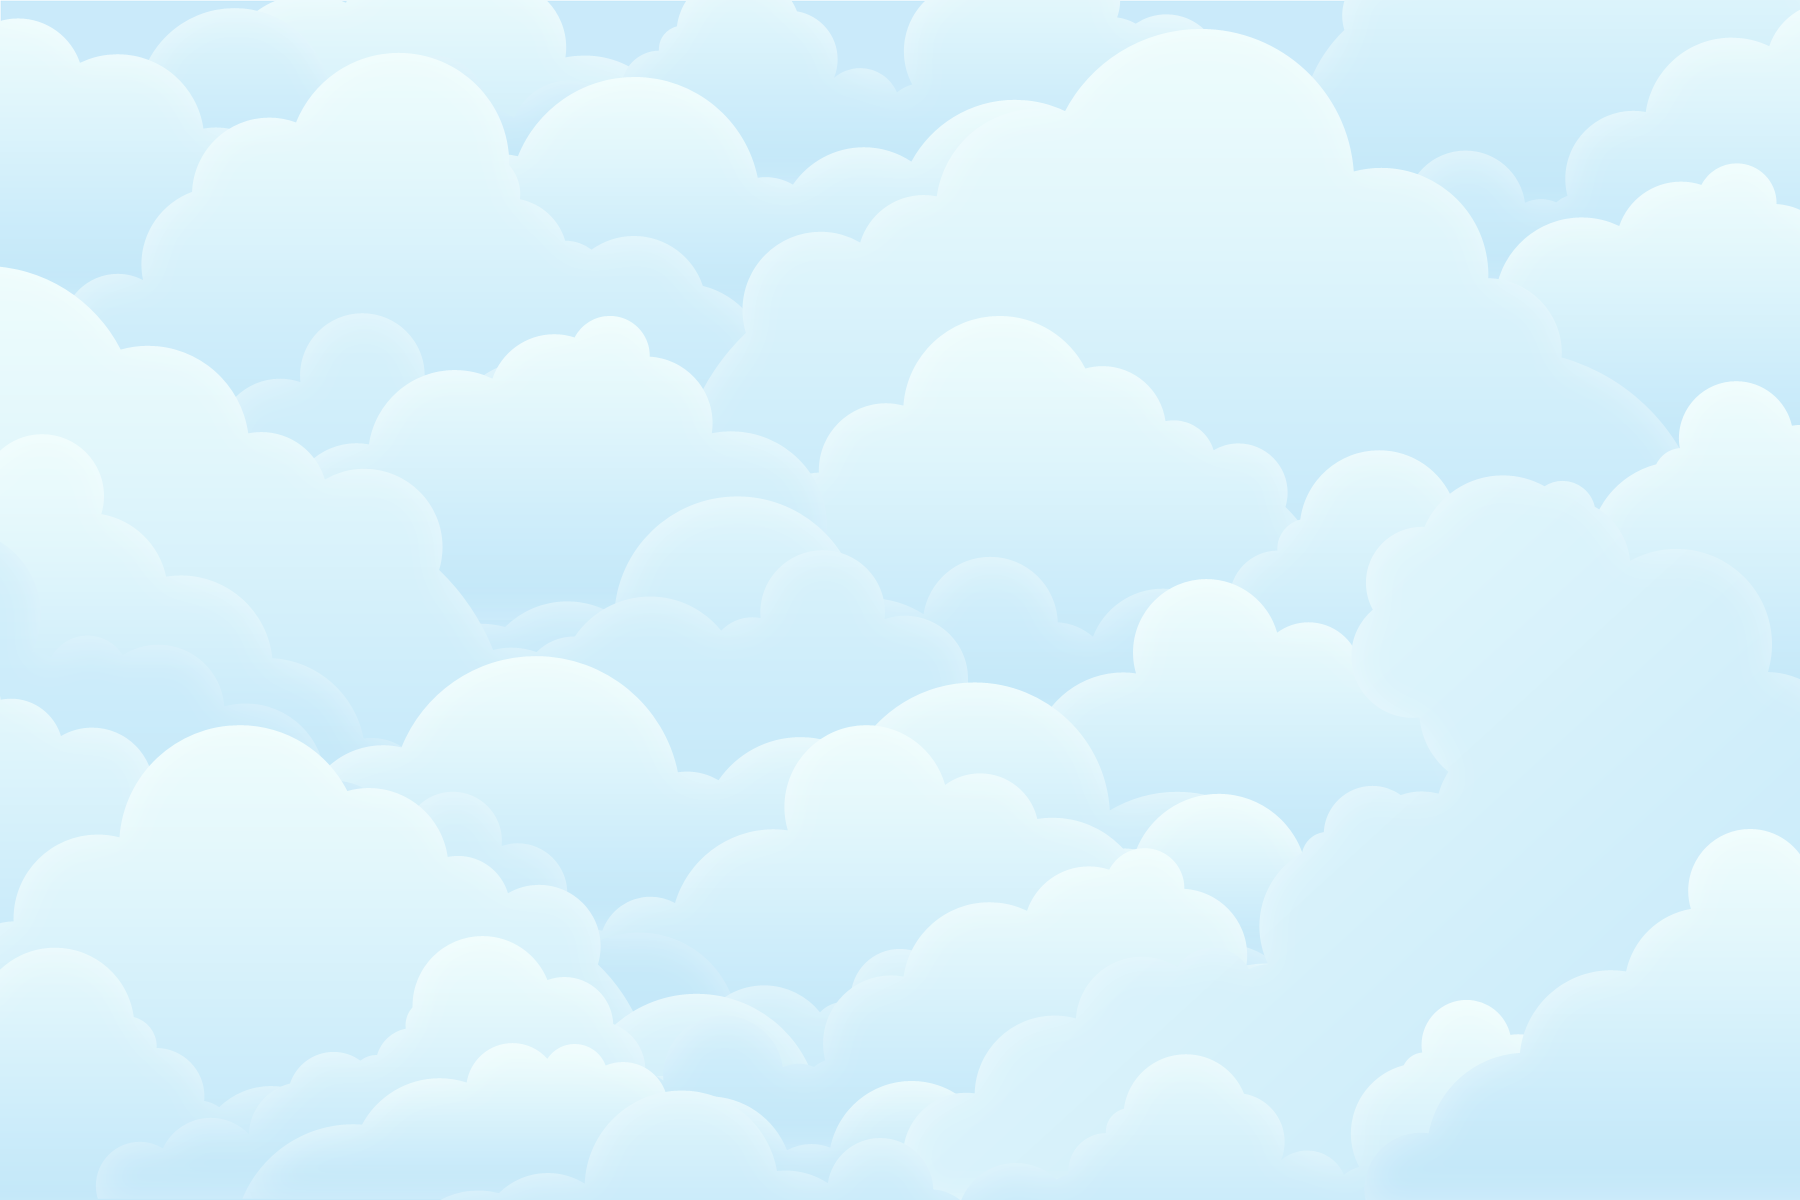 Cloudy Sky Background PNG - 159281